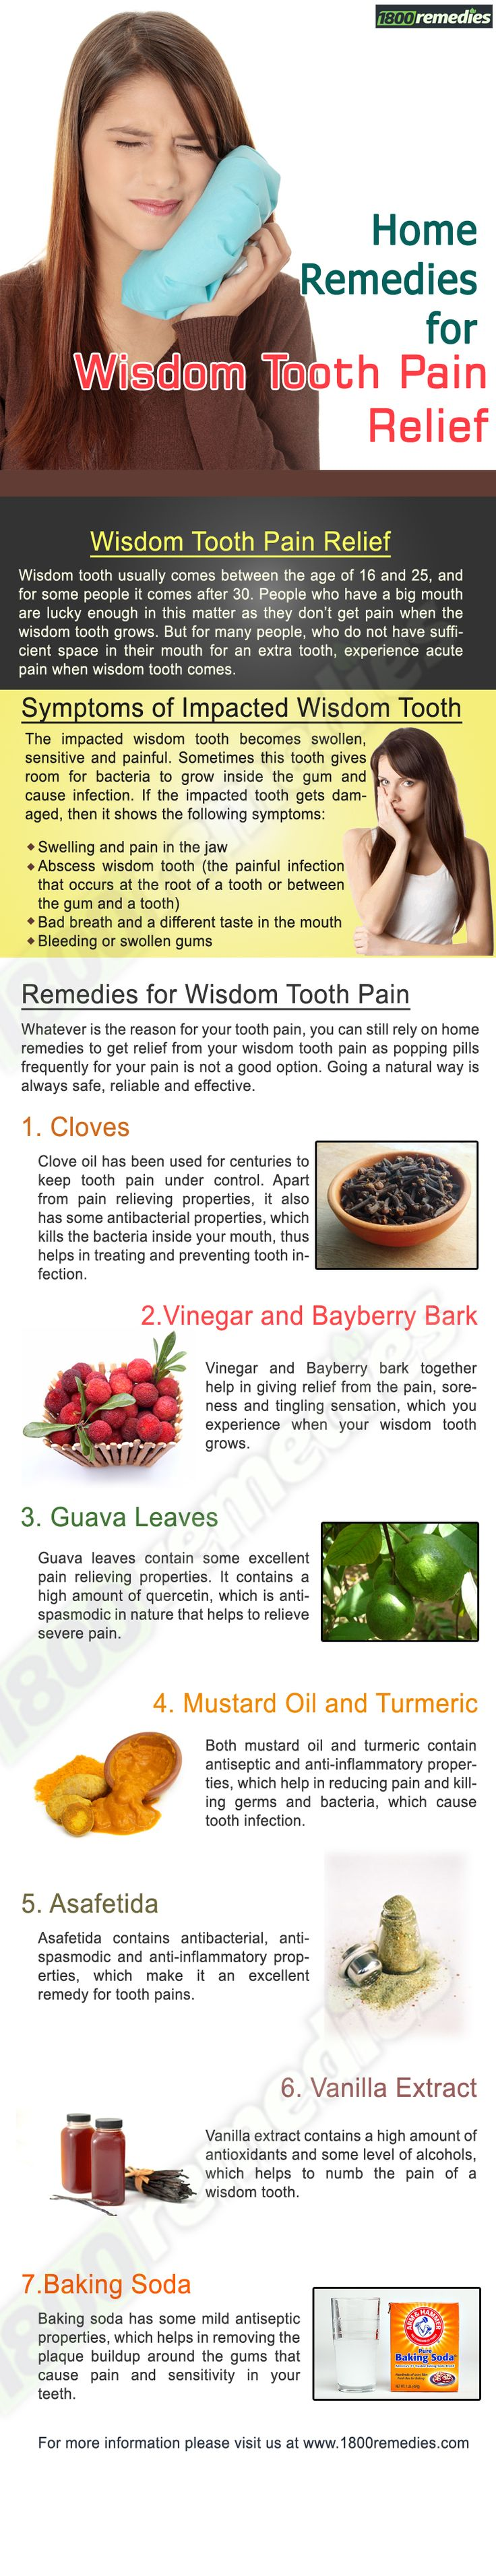 Best Tooth pain reme s ideas on Pinterest